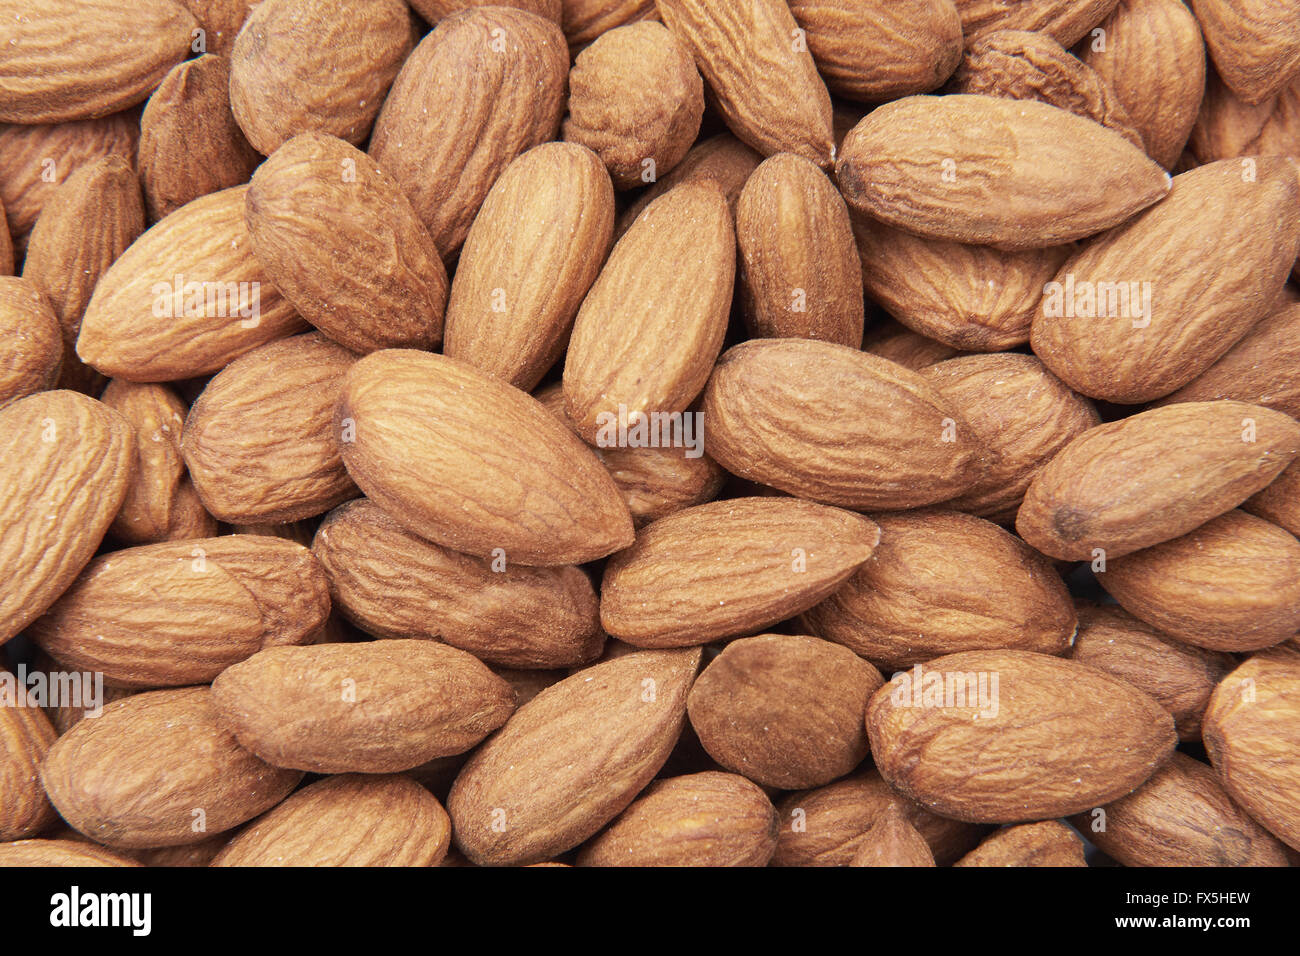 Closeup image of ecological unshelled almonds - Stock Image